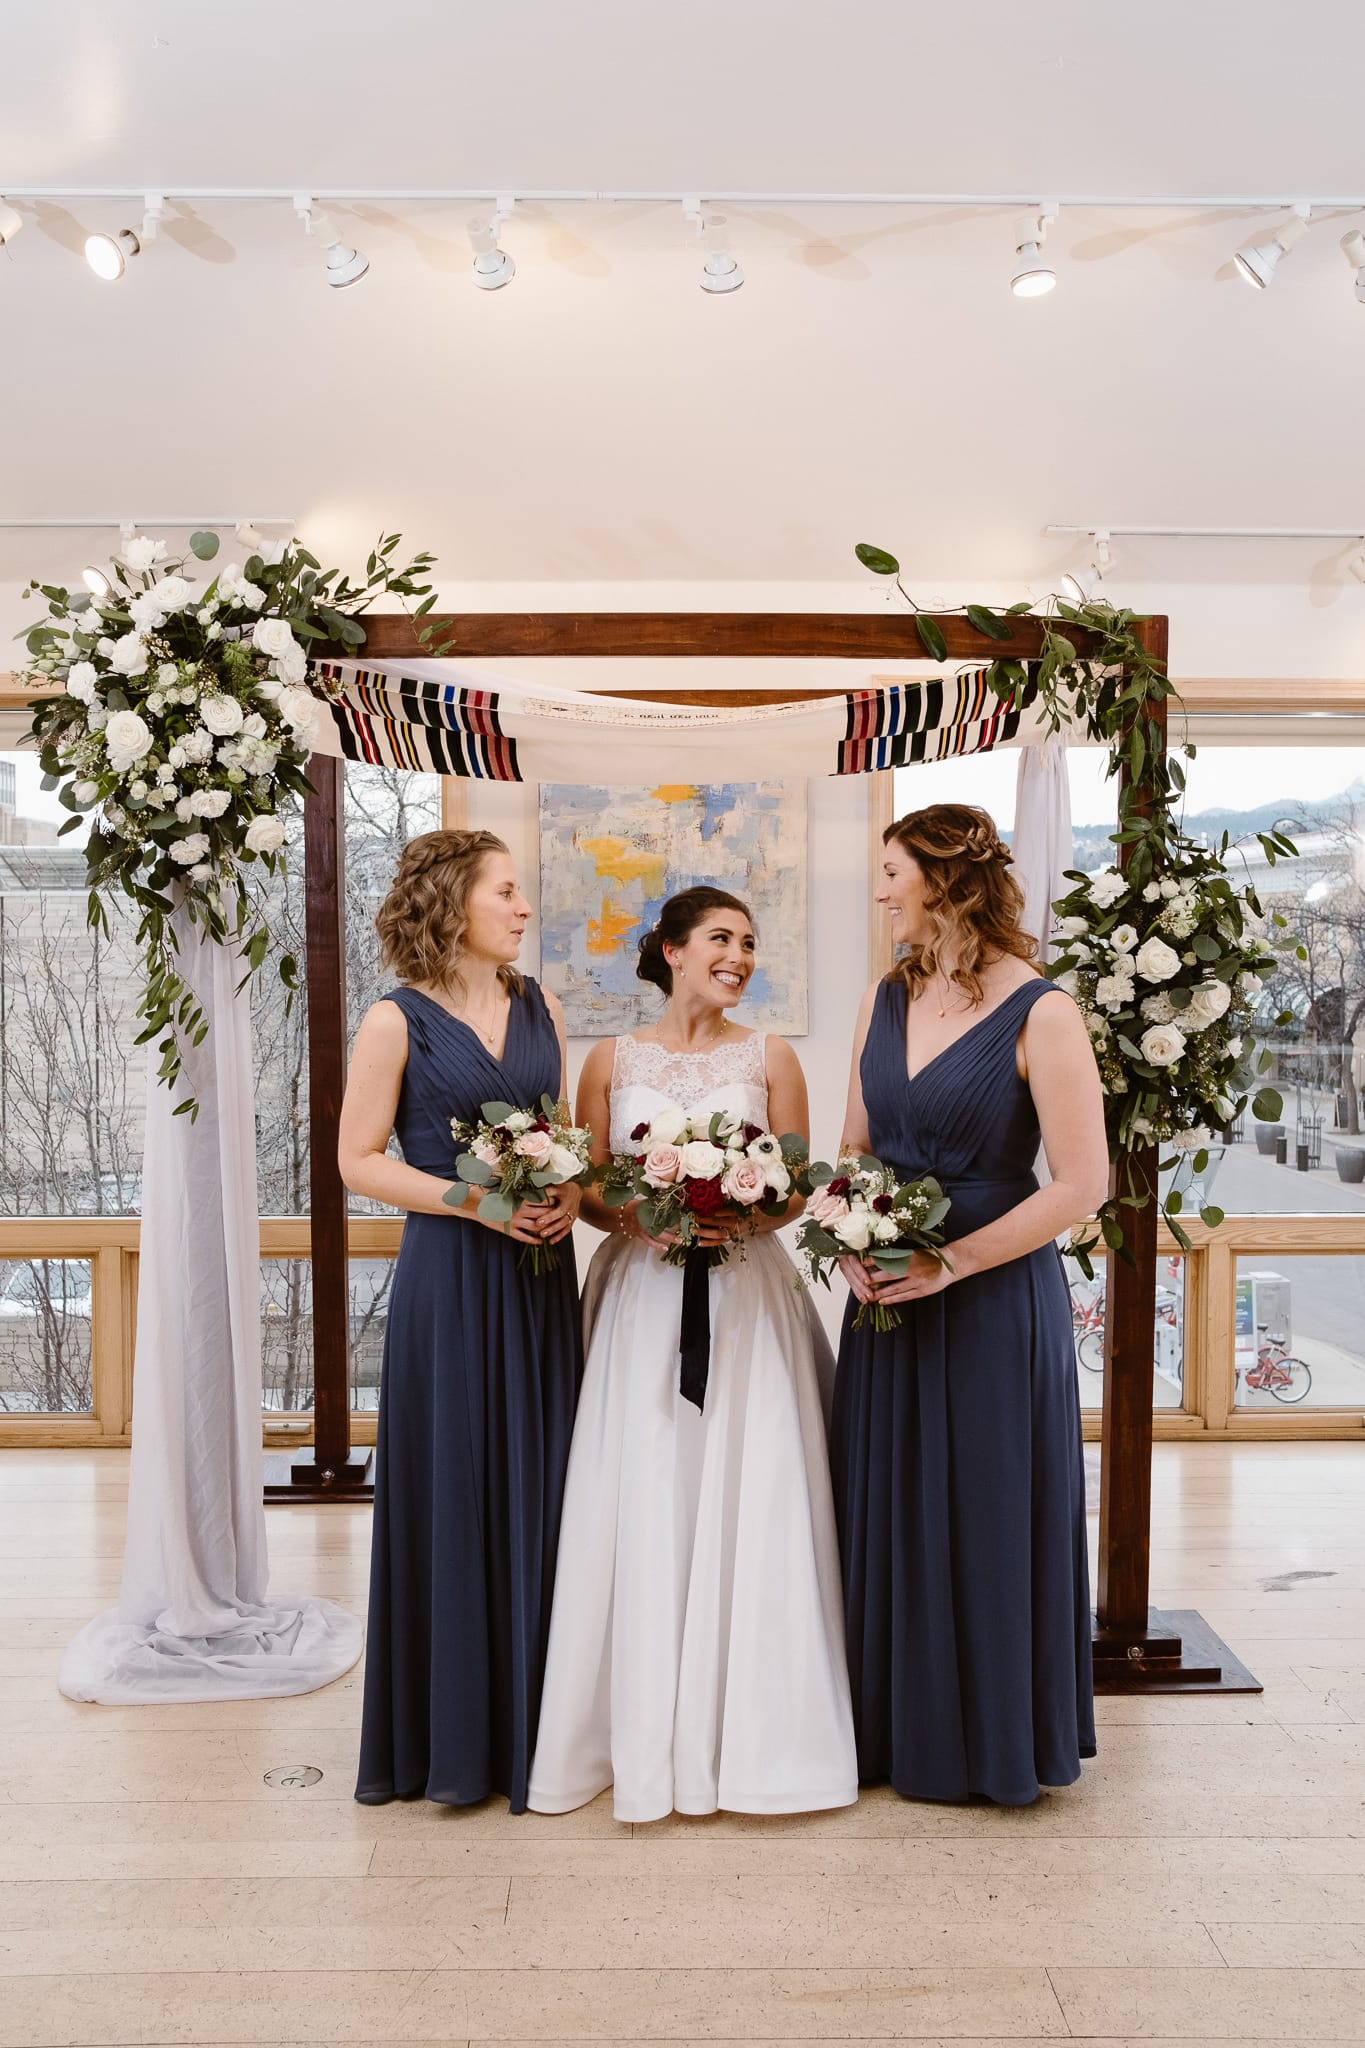 Rembrandt Yard wedding photographer, Boulder wedding photographer, Colorado Jewish wedding, bride with bridesmaids in dark blue dresses